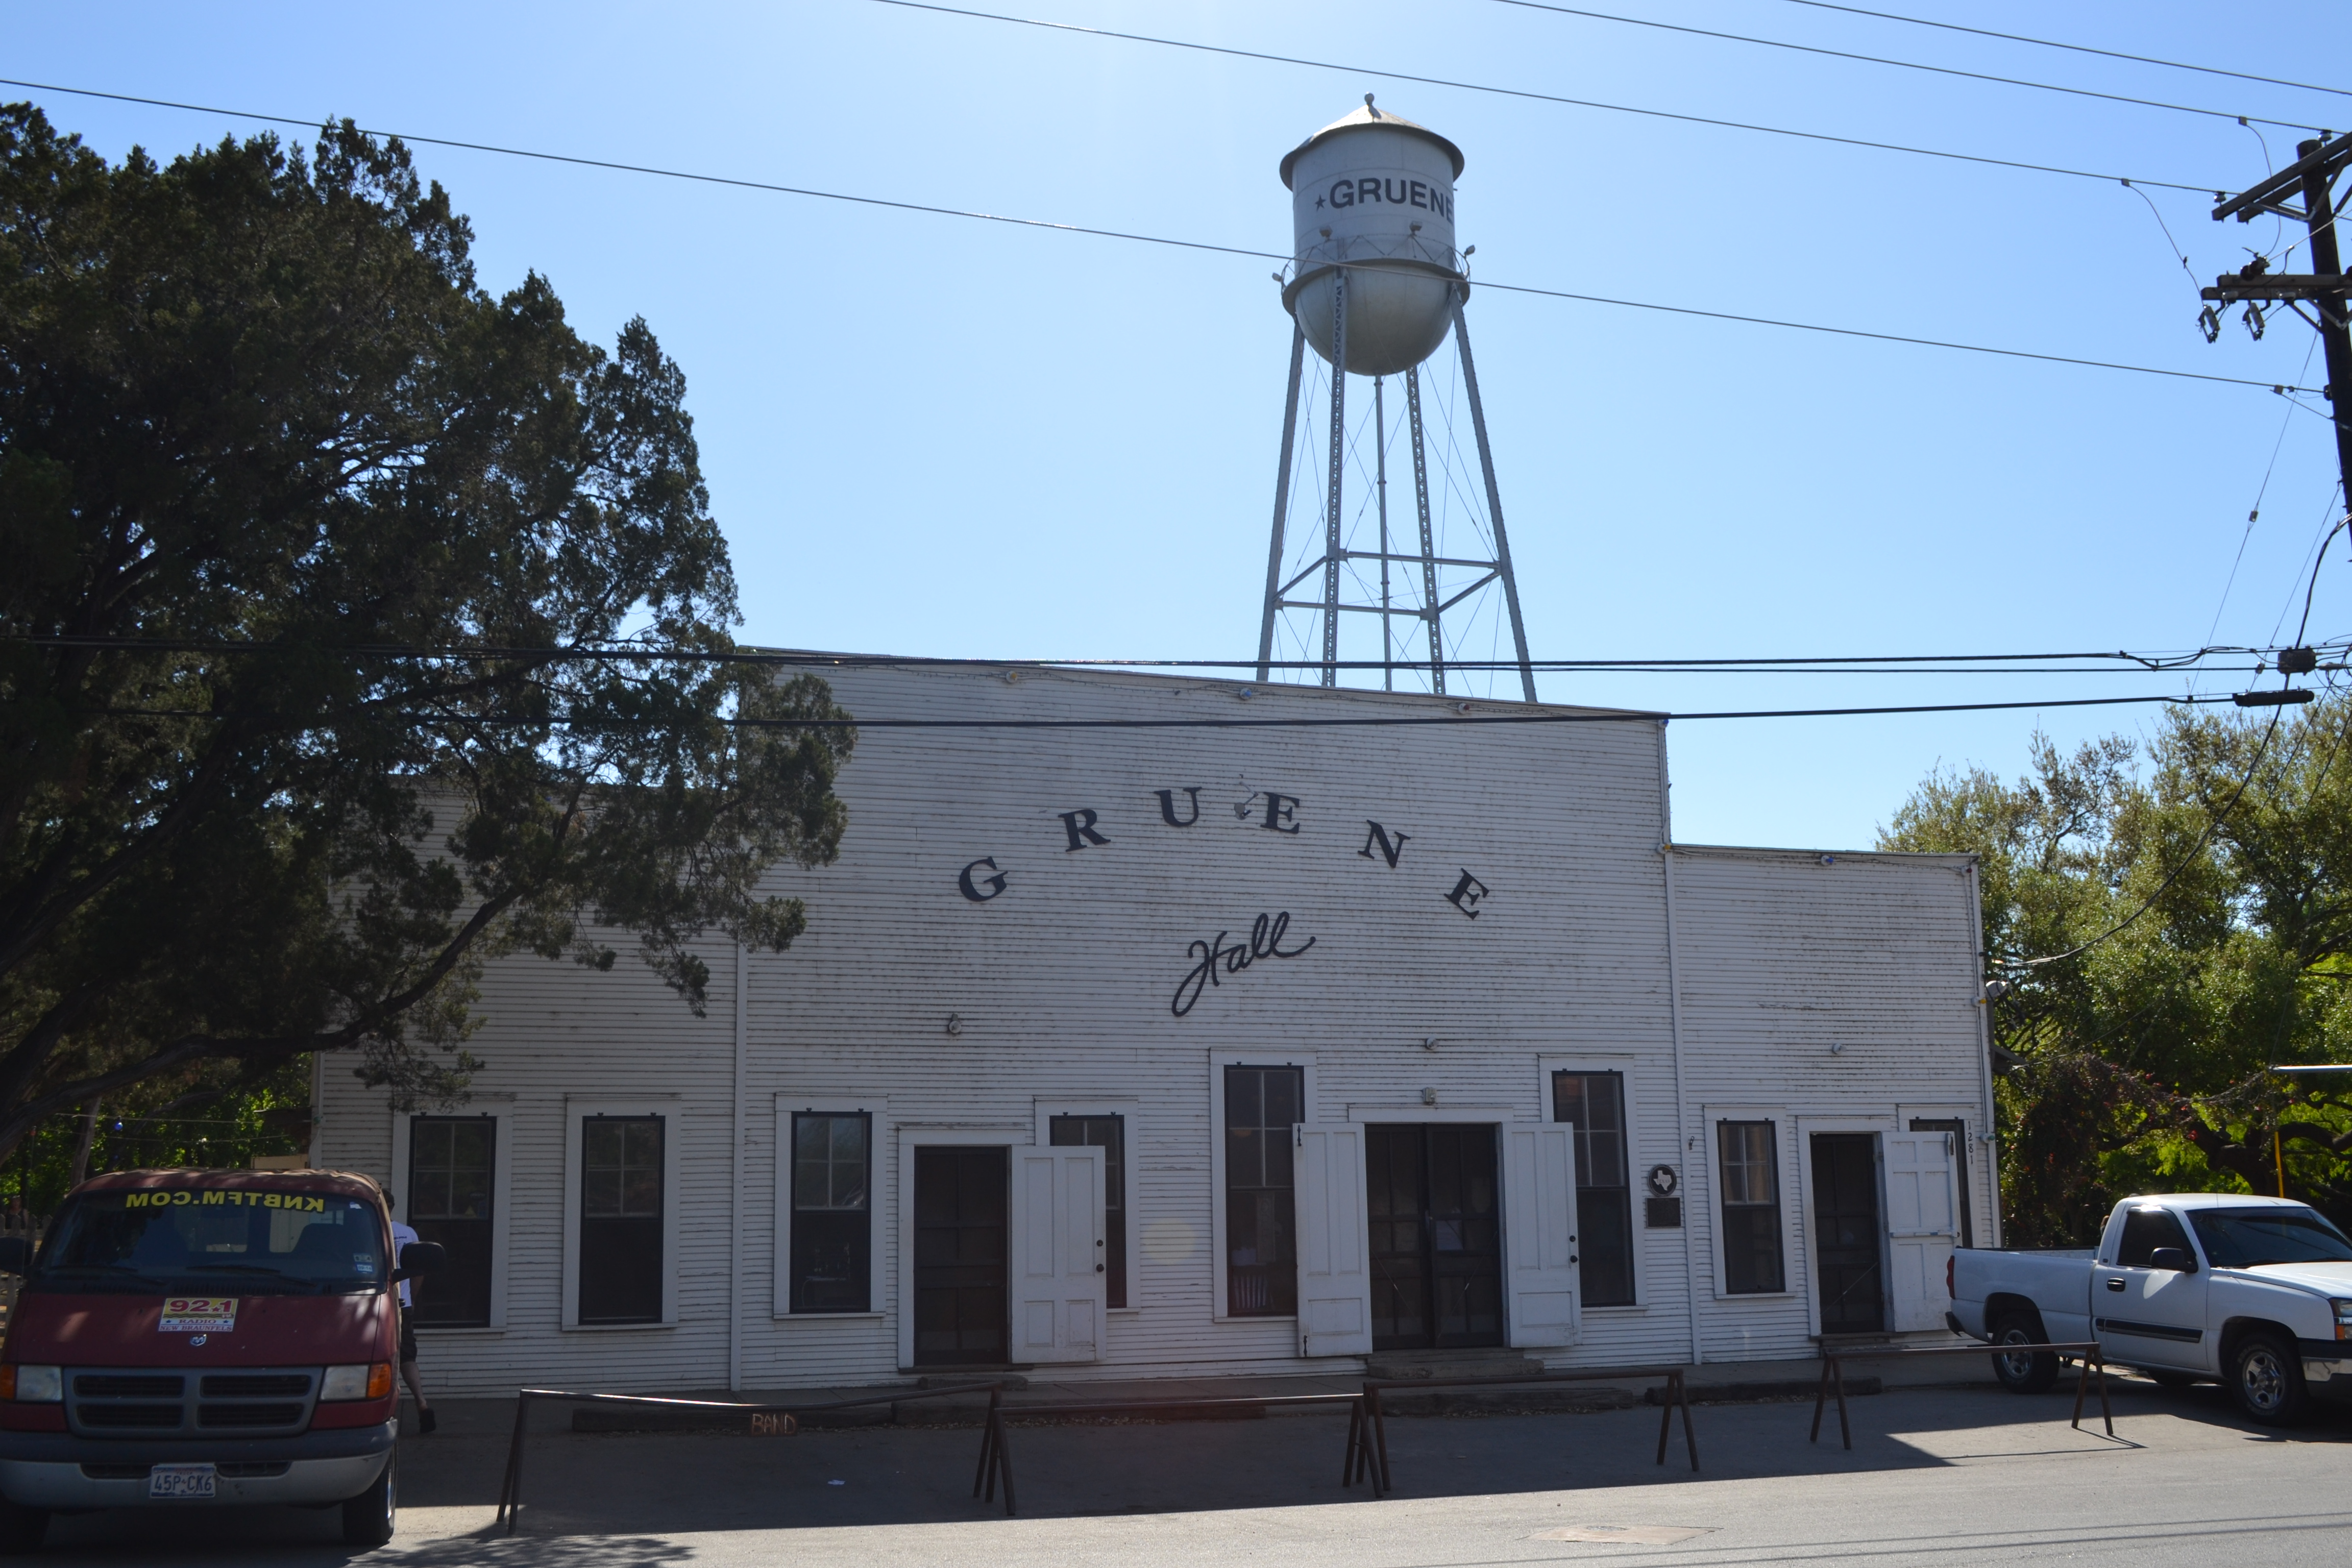 ... respects, Gruene is a perfect destination for a trip with girlfriends